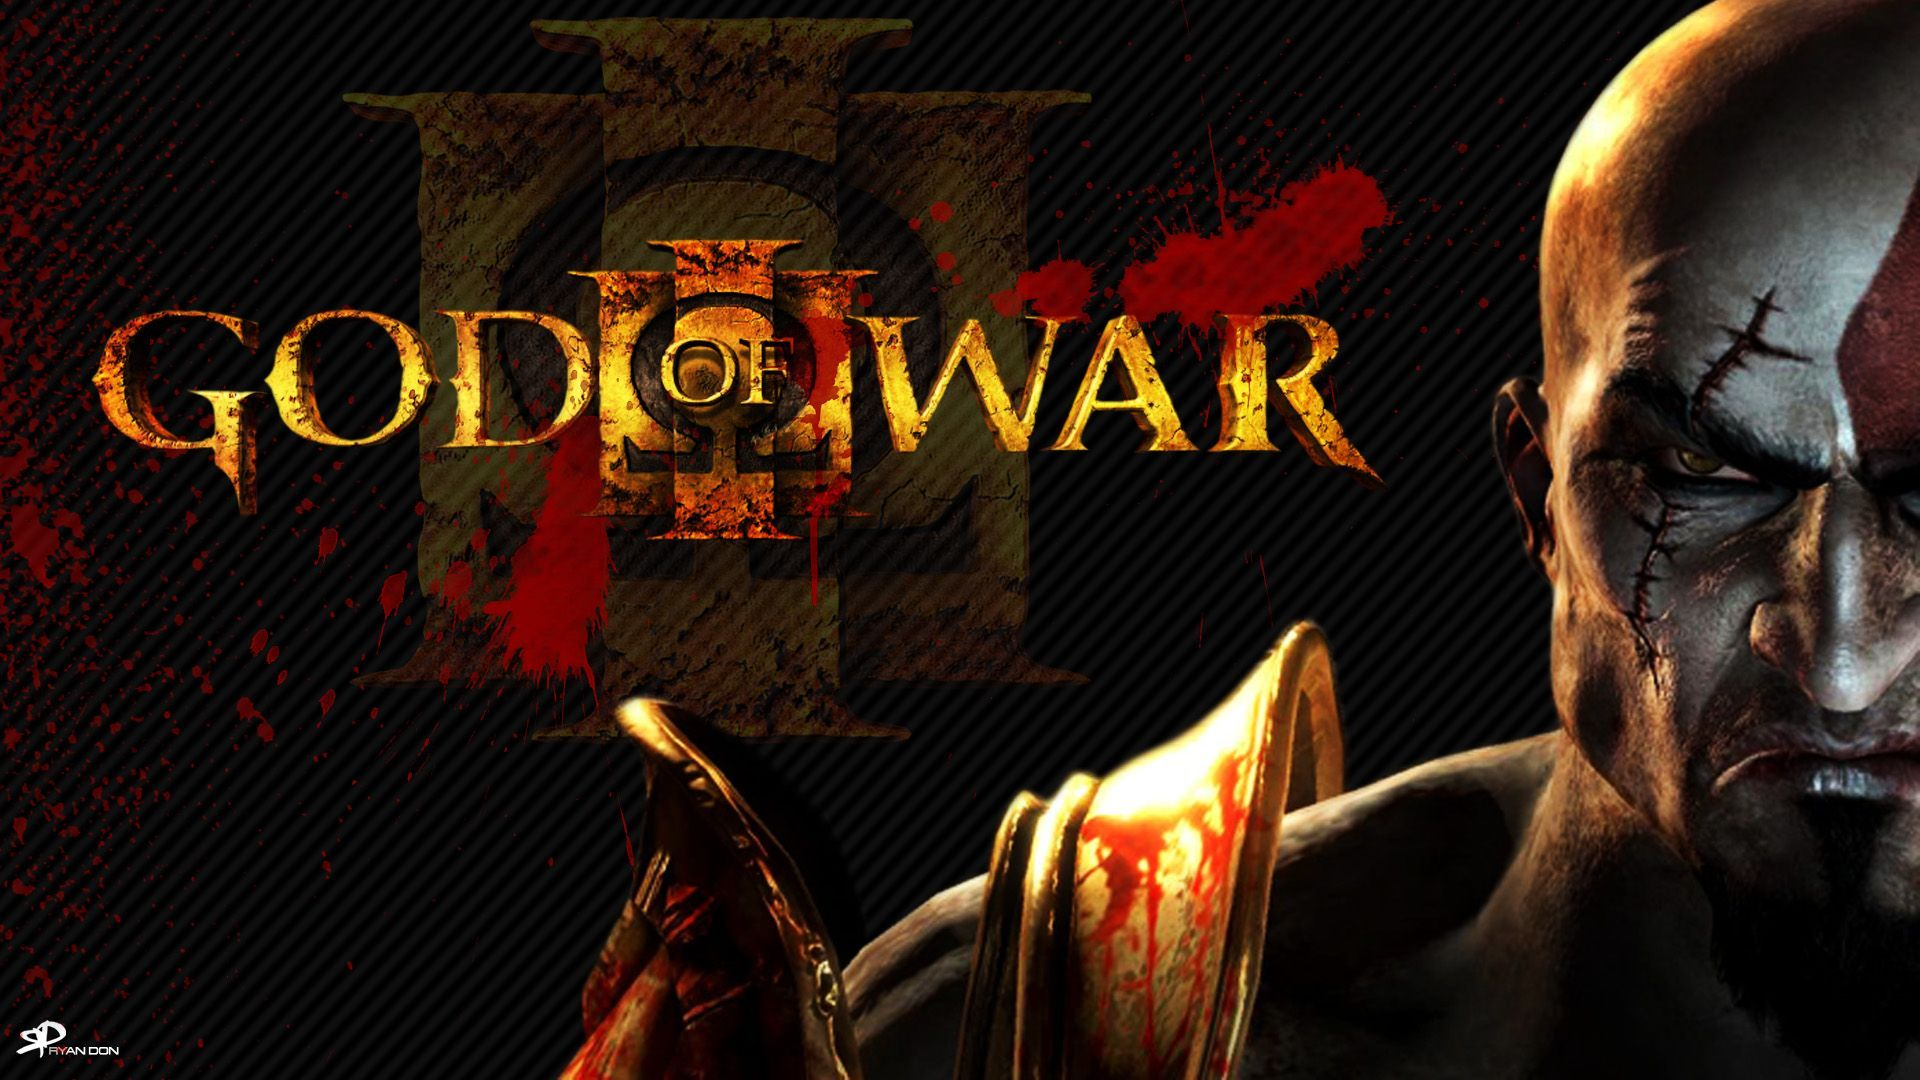 God Of War Wallpapers Picture For Desktop Wallpaper On